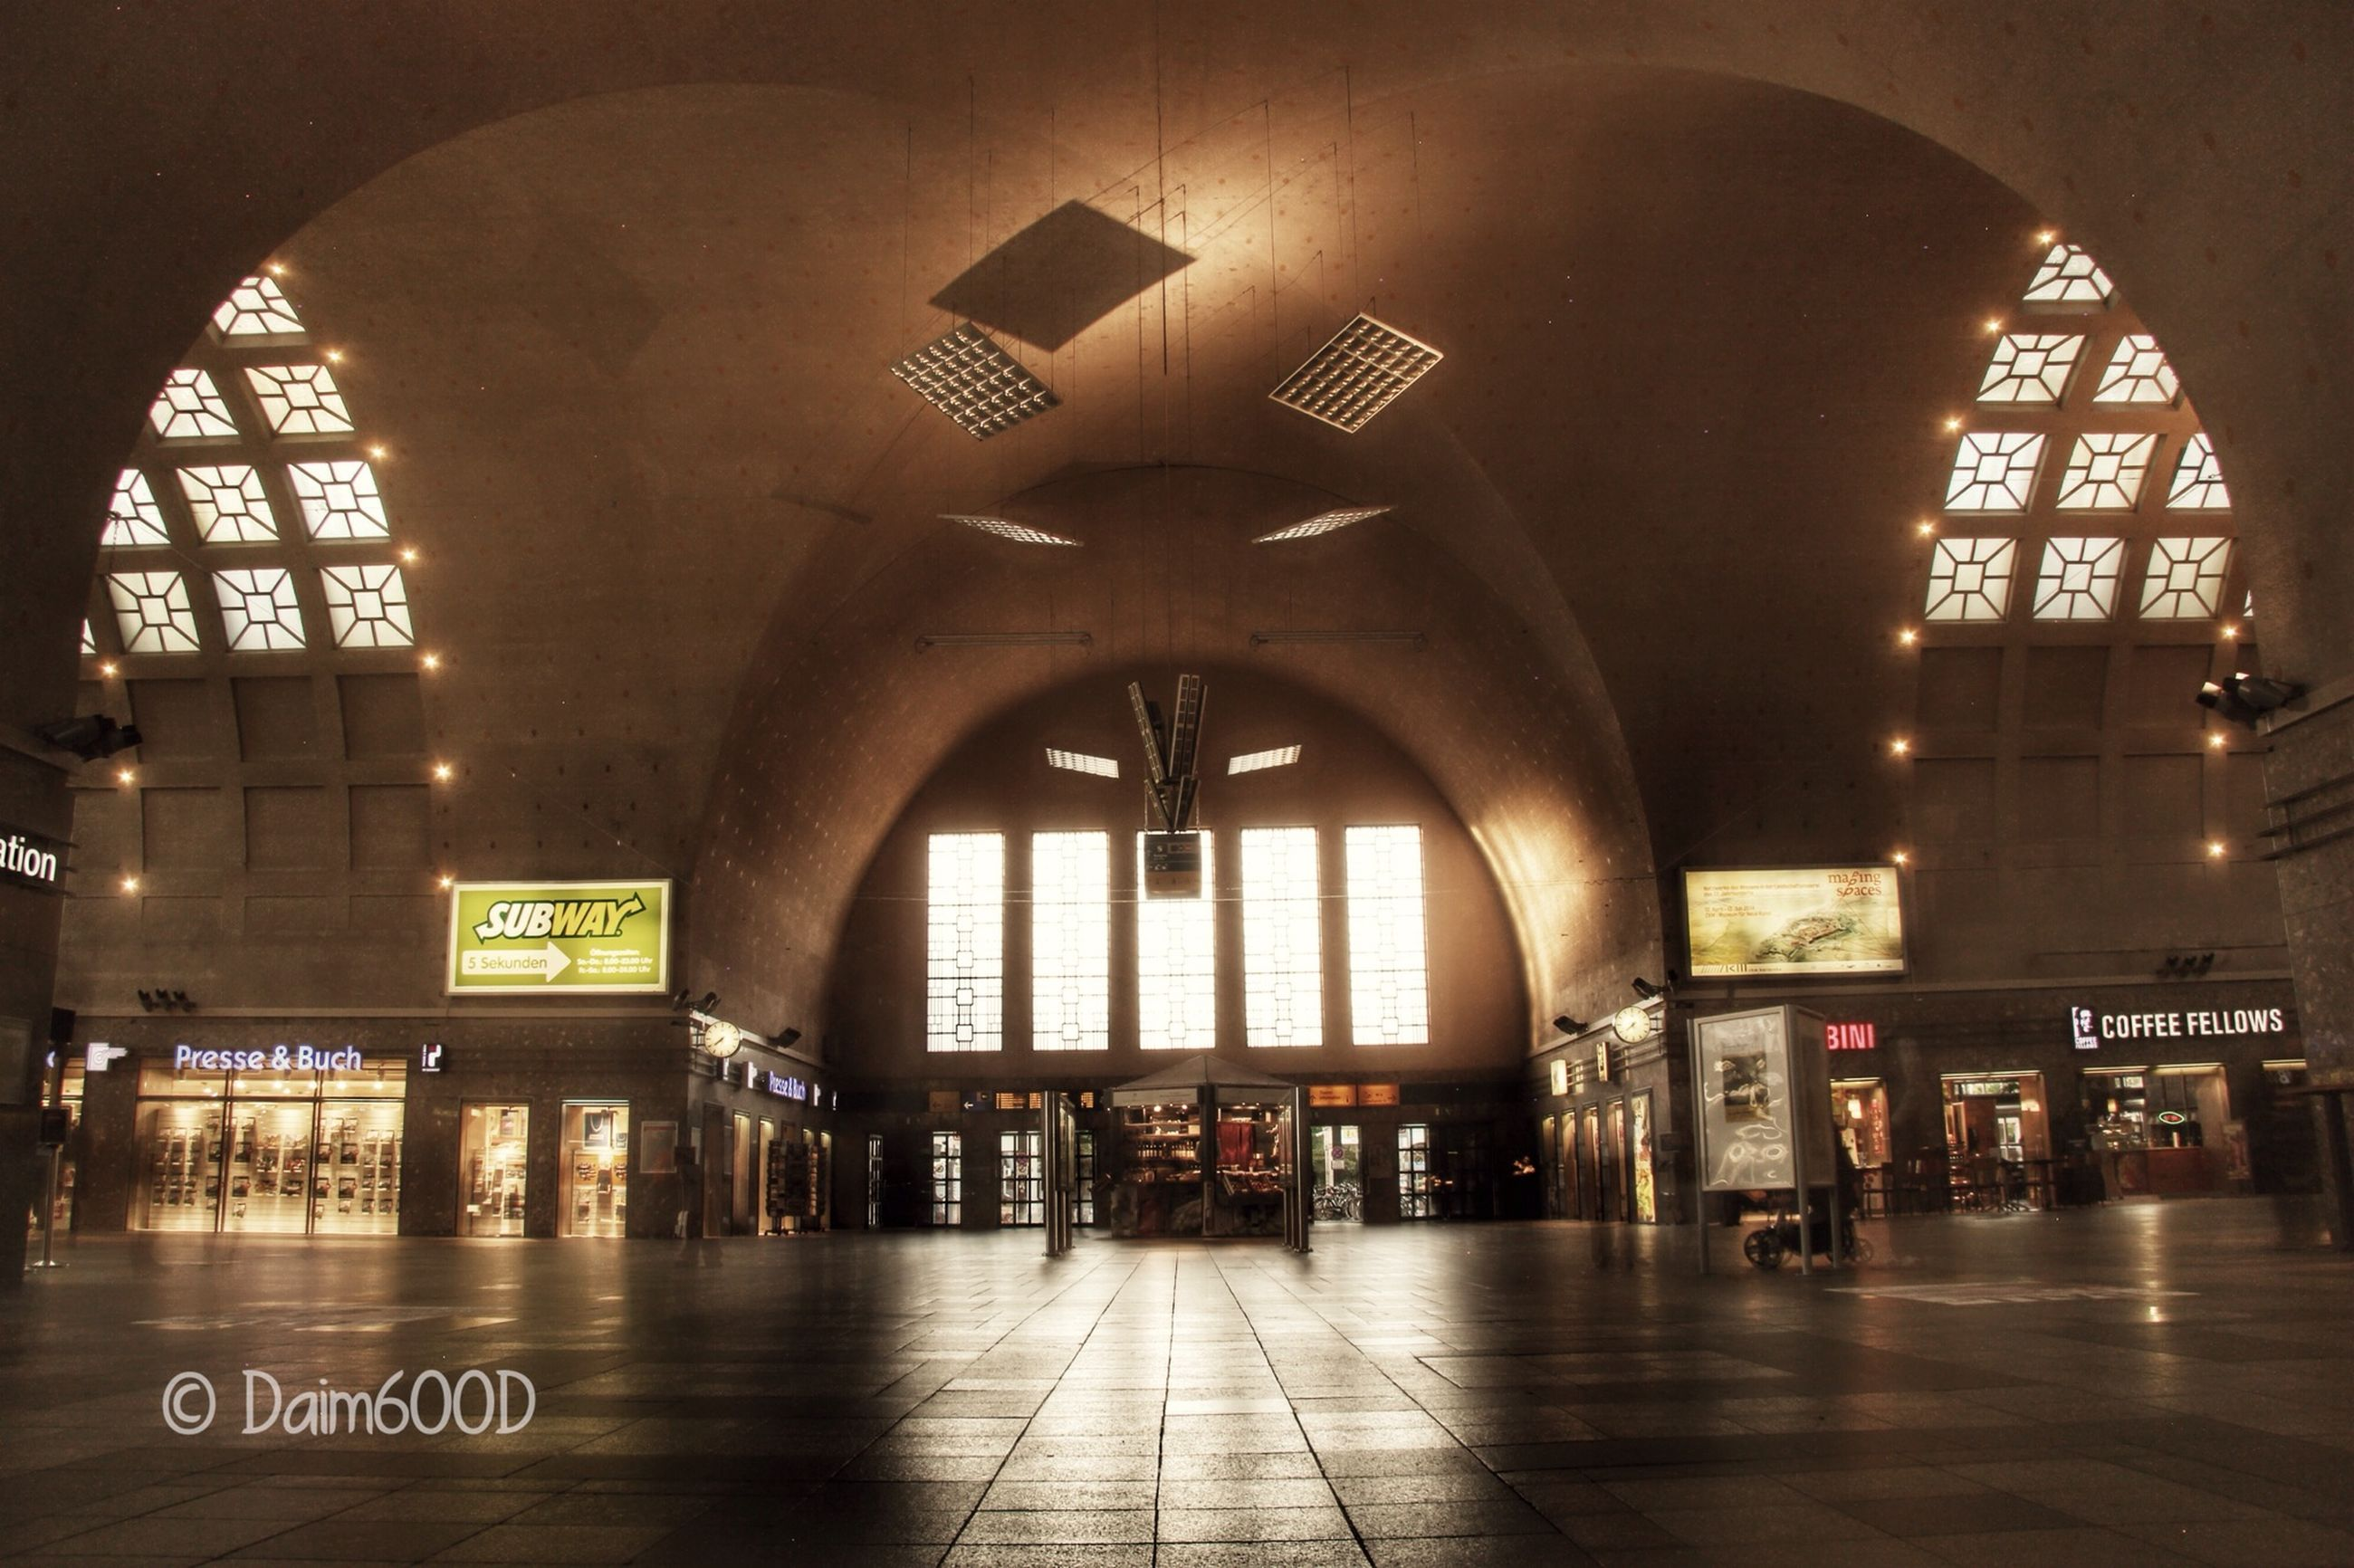 architecture, built structure, arch, building exterior, illuminated, indoors, city, text, travel, famous place, clock, travel destinations, incidental people, capital cities, railroad station, interior, transportation, communication, tourism, low angle view